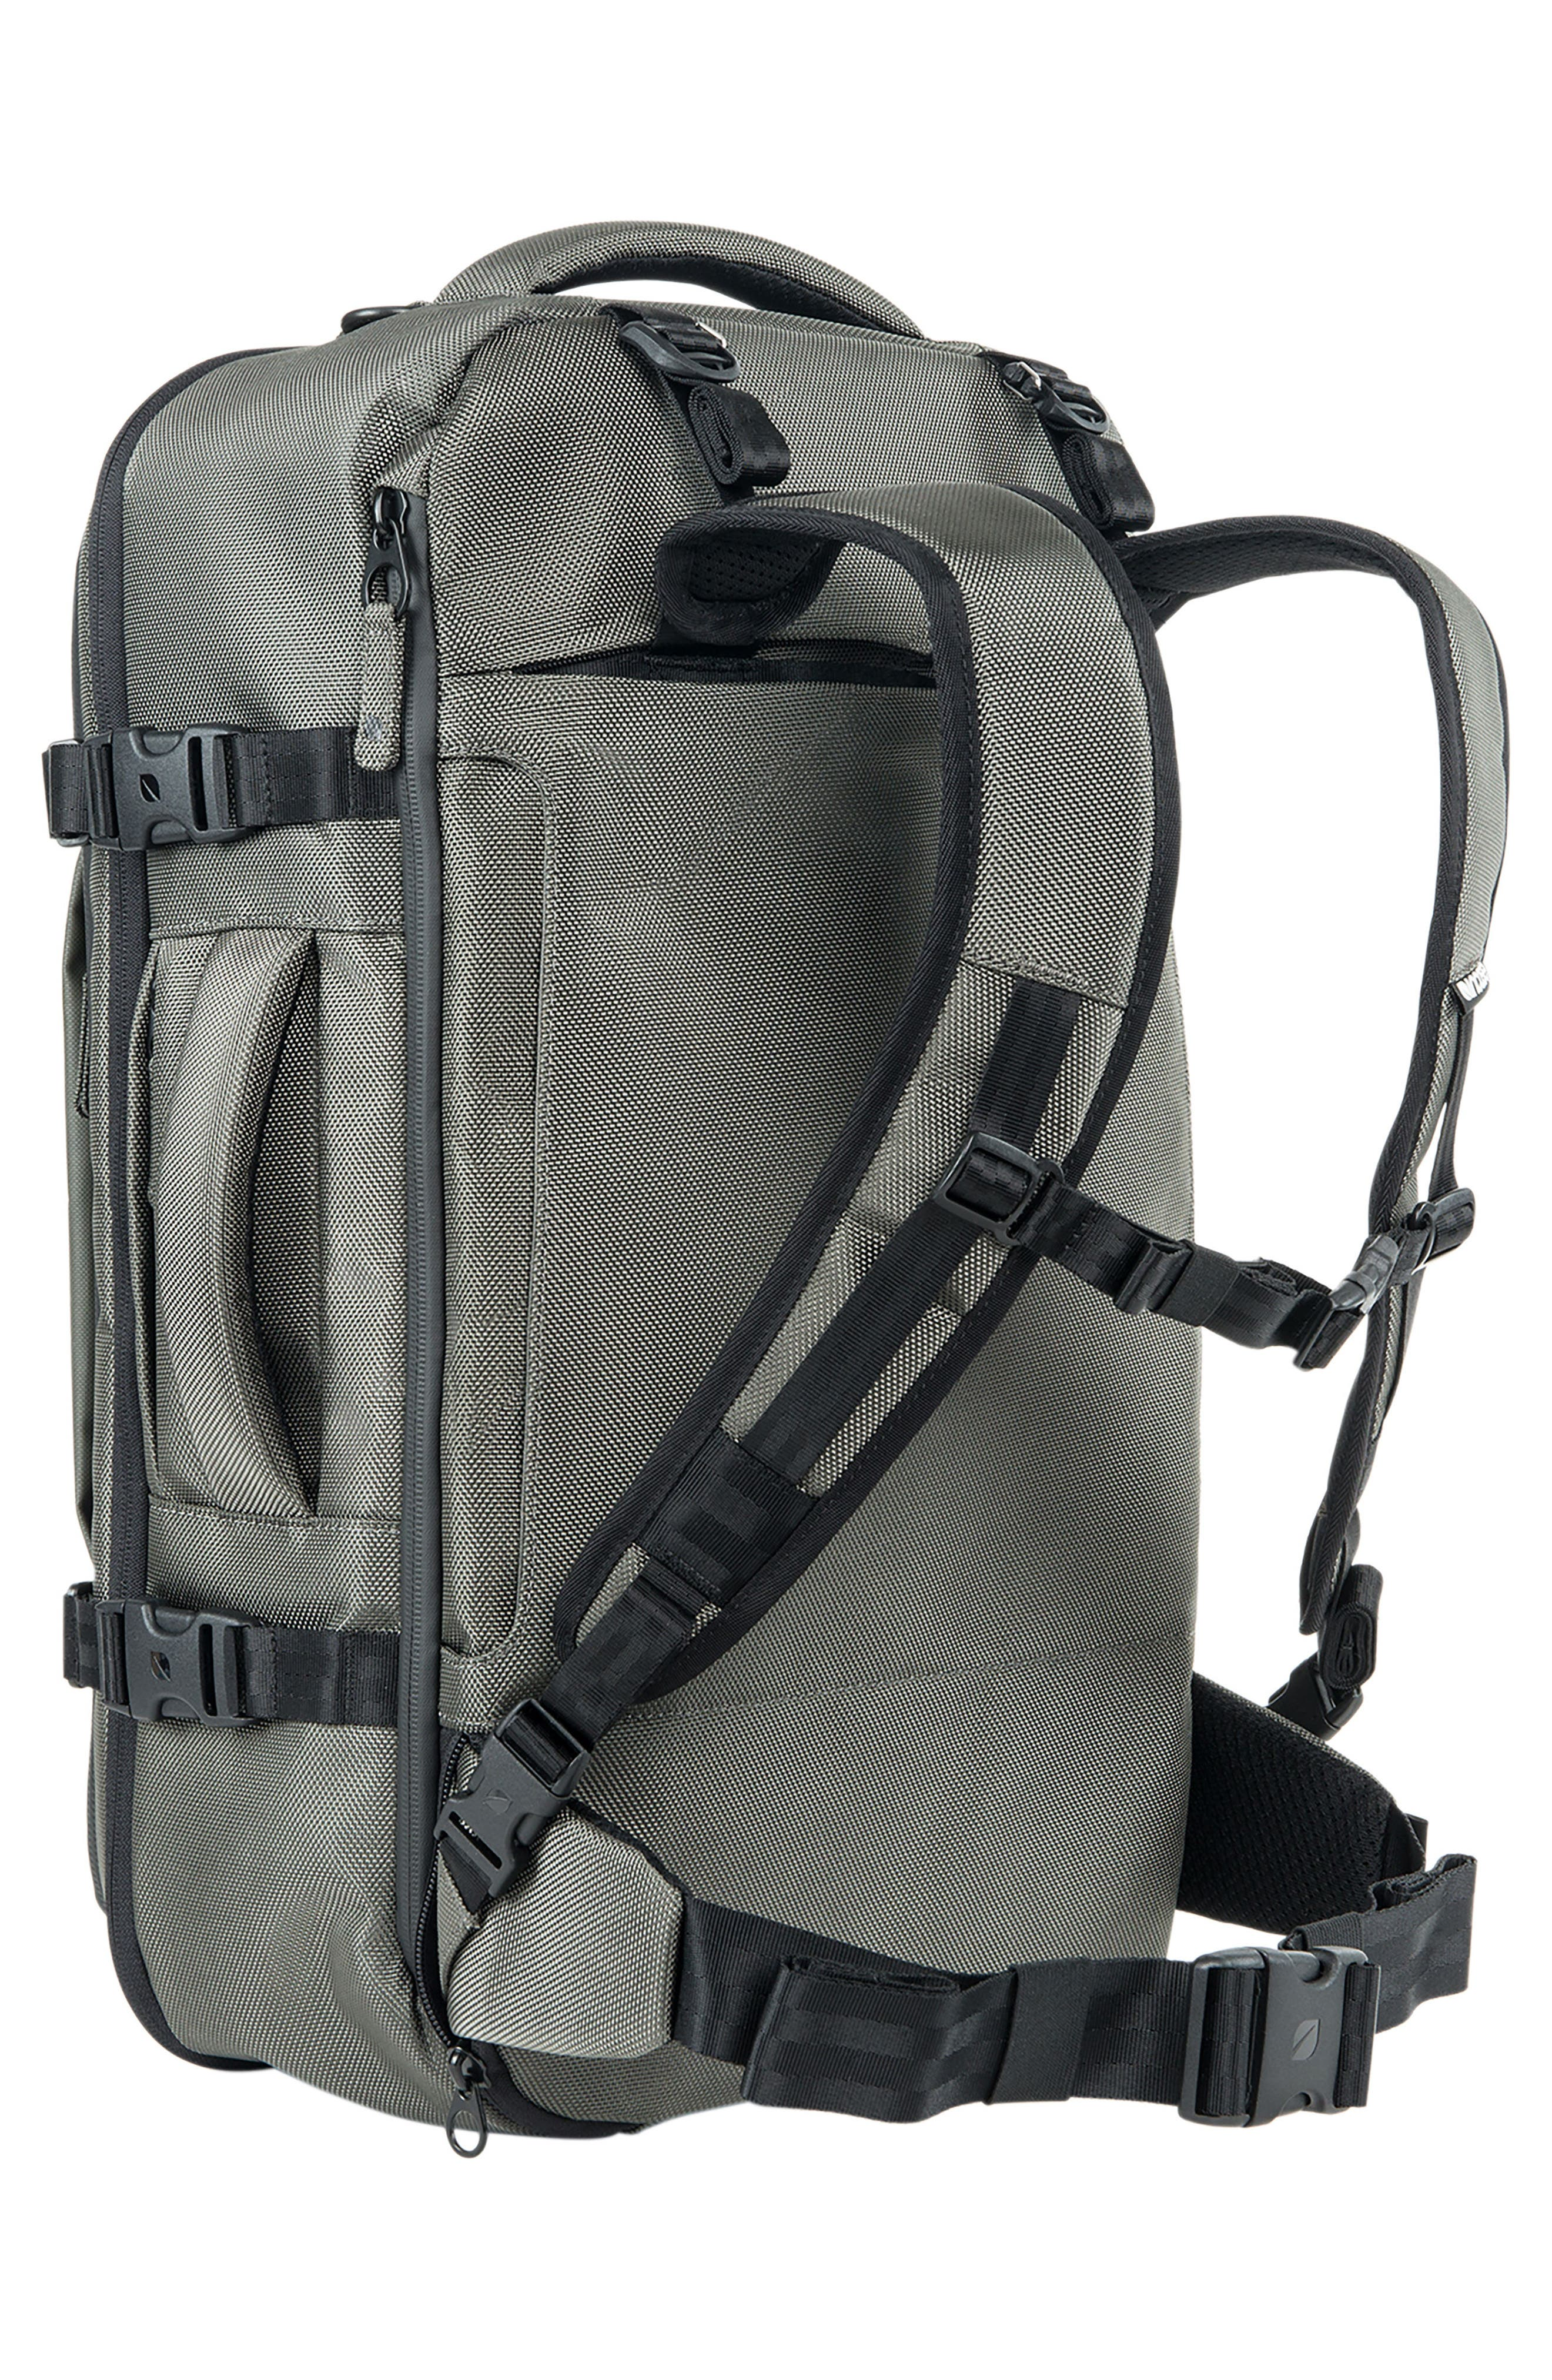 TRACTO Convertible Backpack,                             Alternate thumbnail 2, color,                             Anthracite